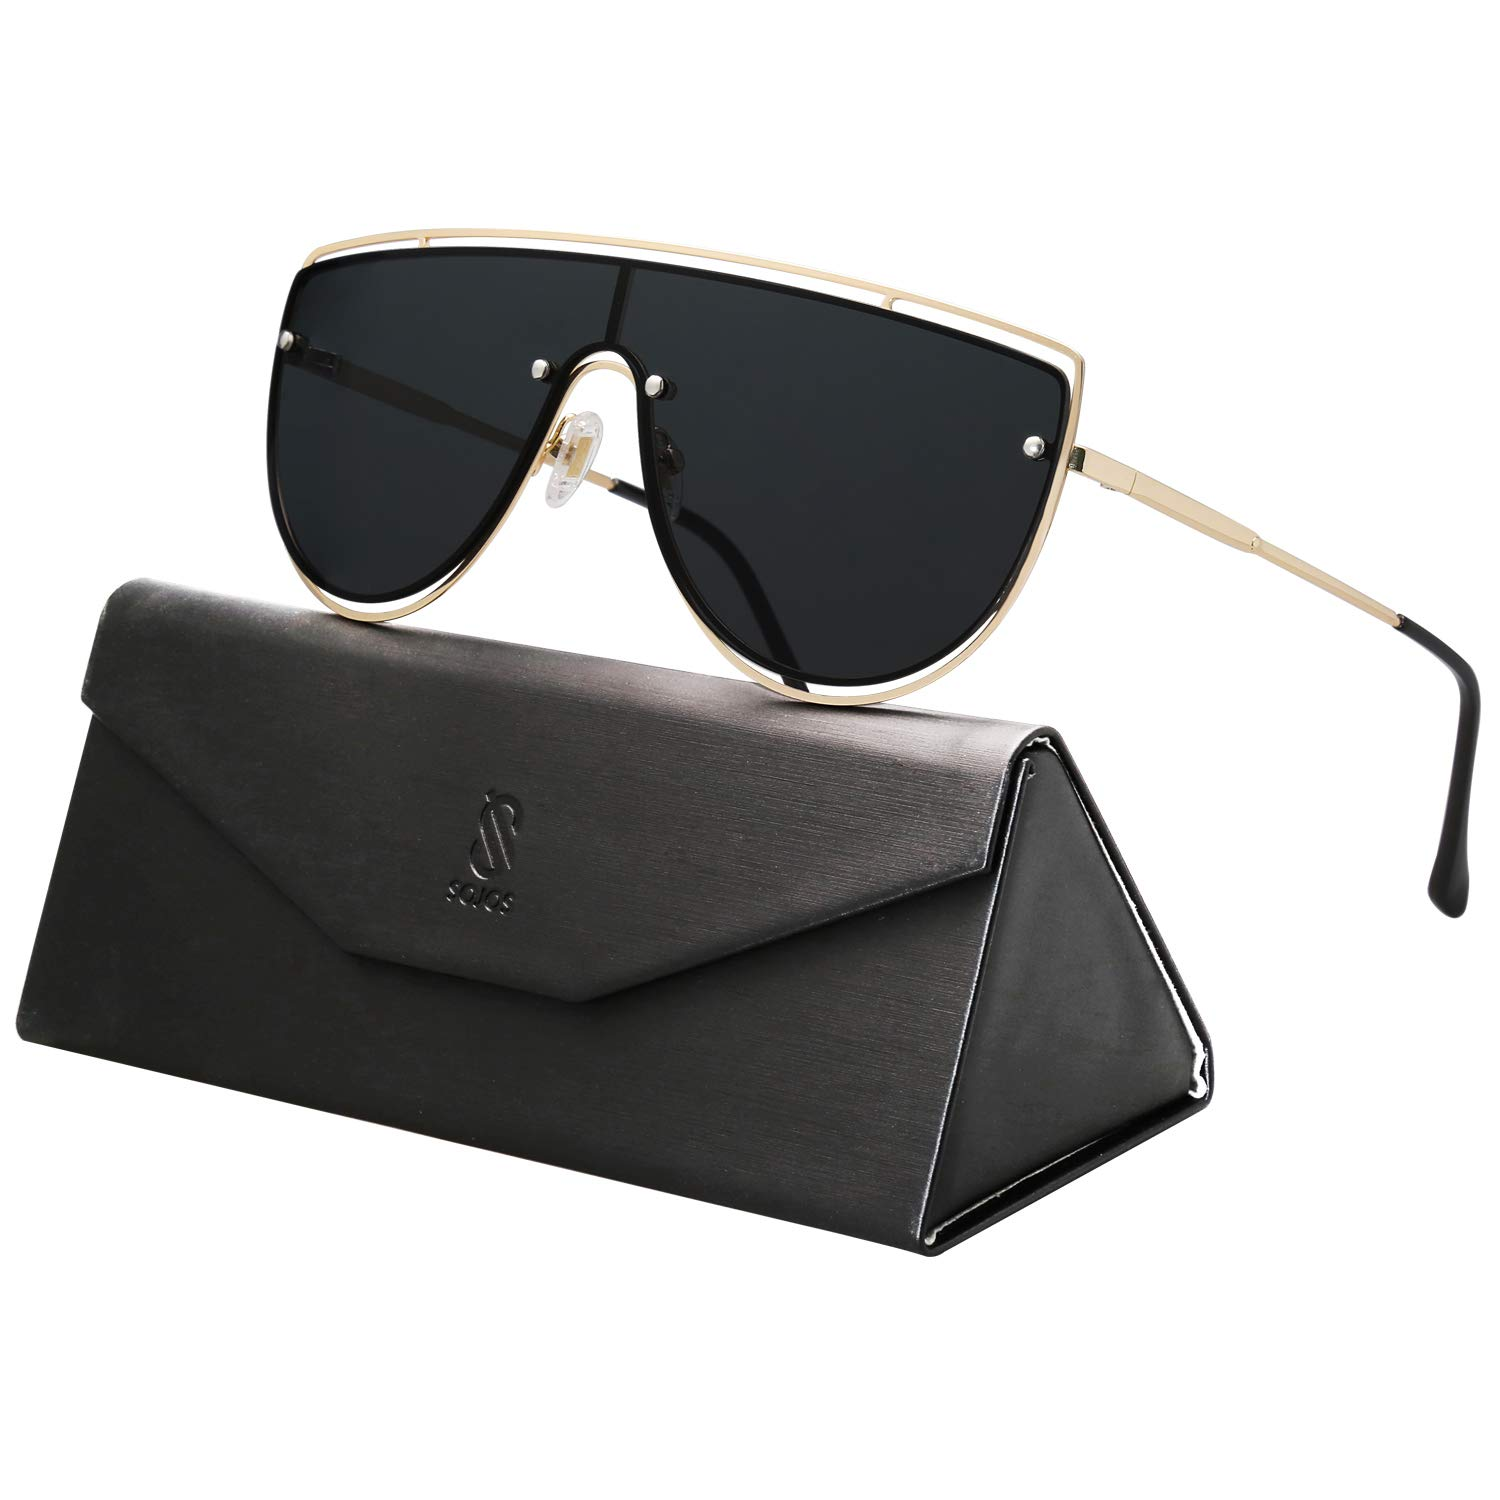 SOJOS Oversized One-piece Shield Sunglasses for Men and Women Mirrored Lens BLUESKY SJ1098 with Gold Frame/Grey Lens by SOJOS